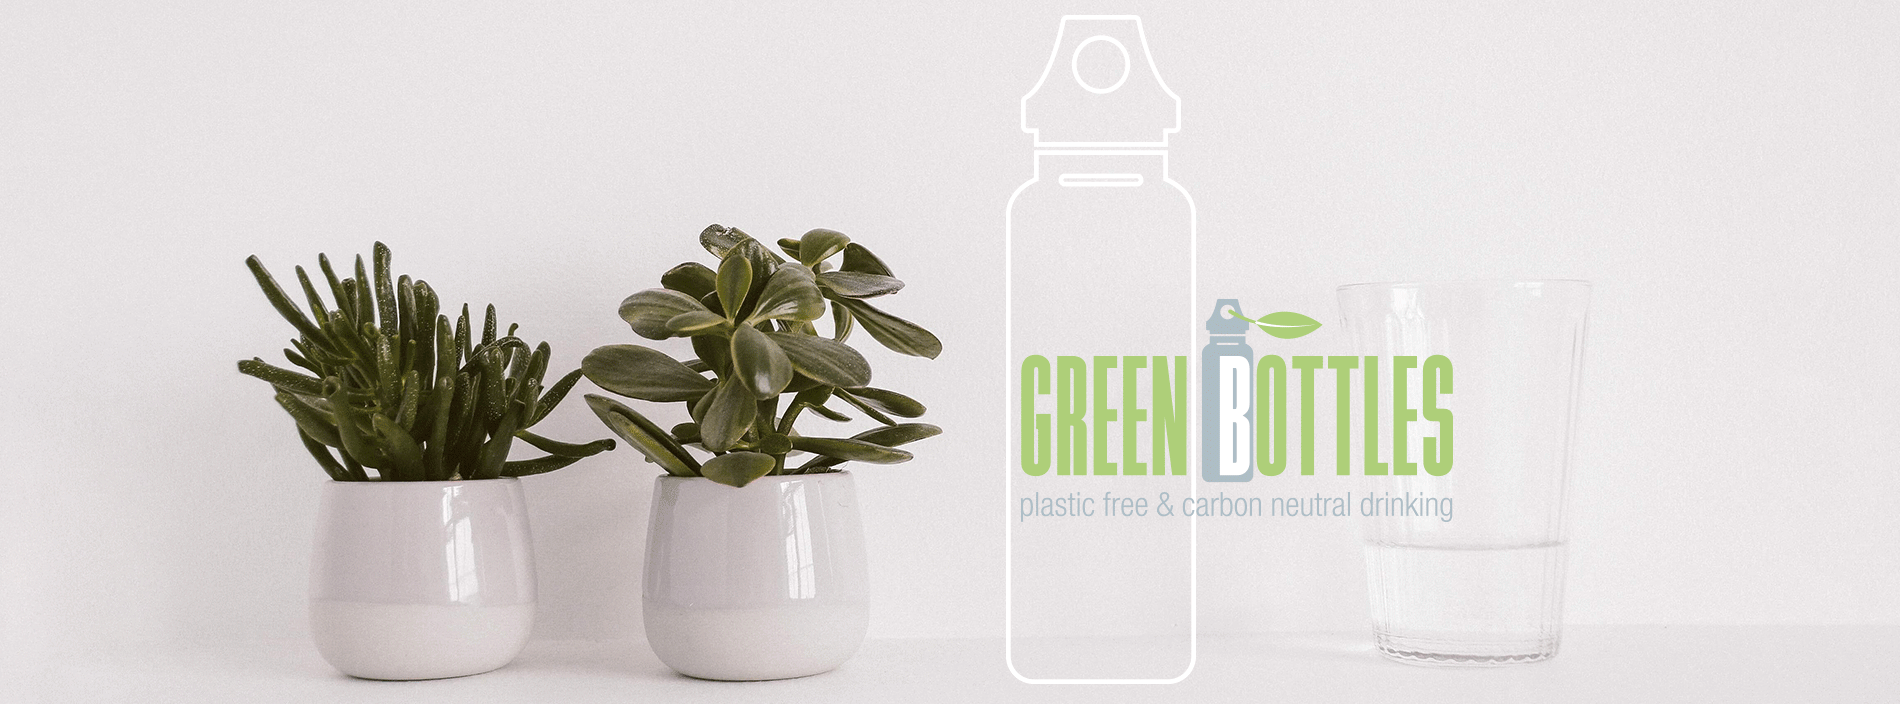 Green Bottles: borracce ecologiche e carbon neutral